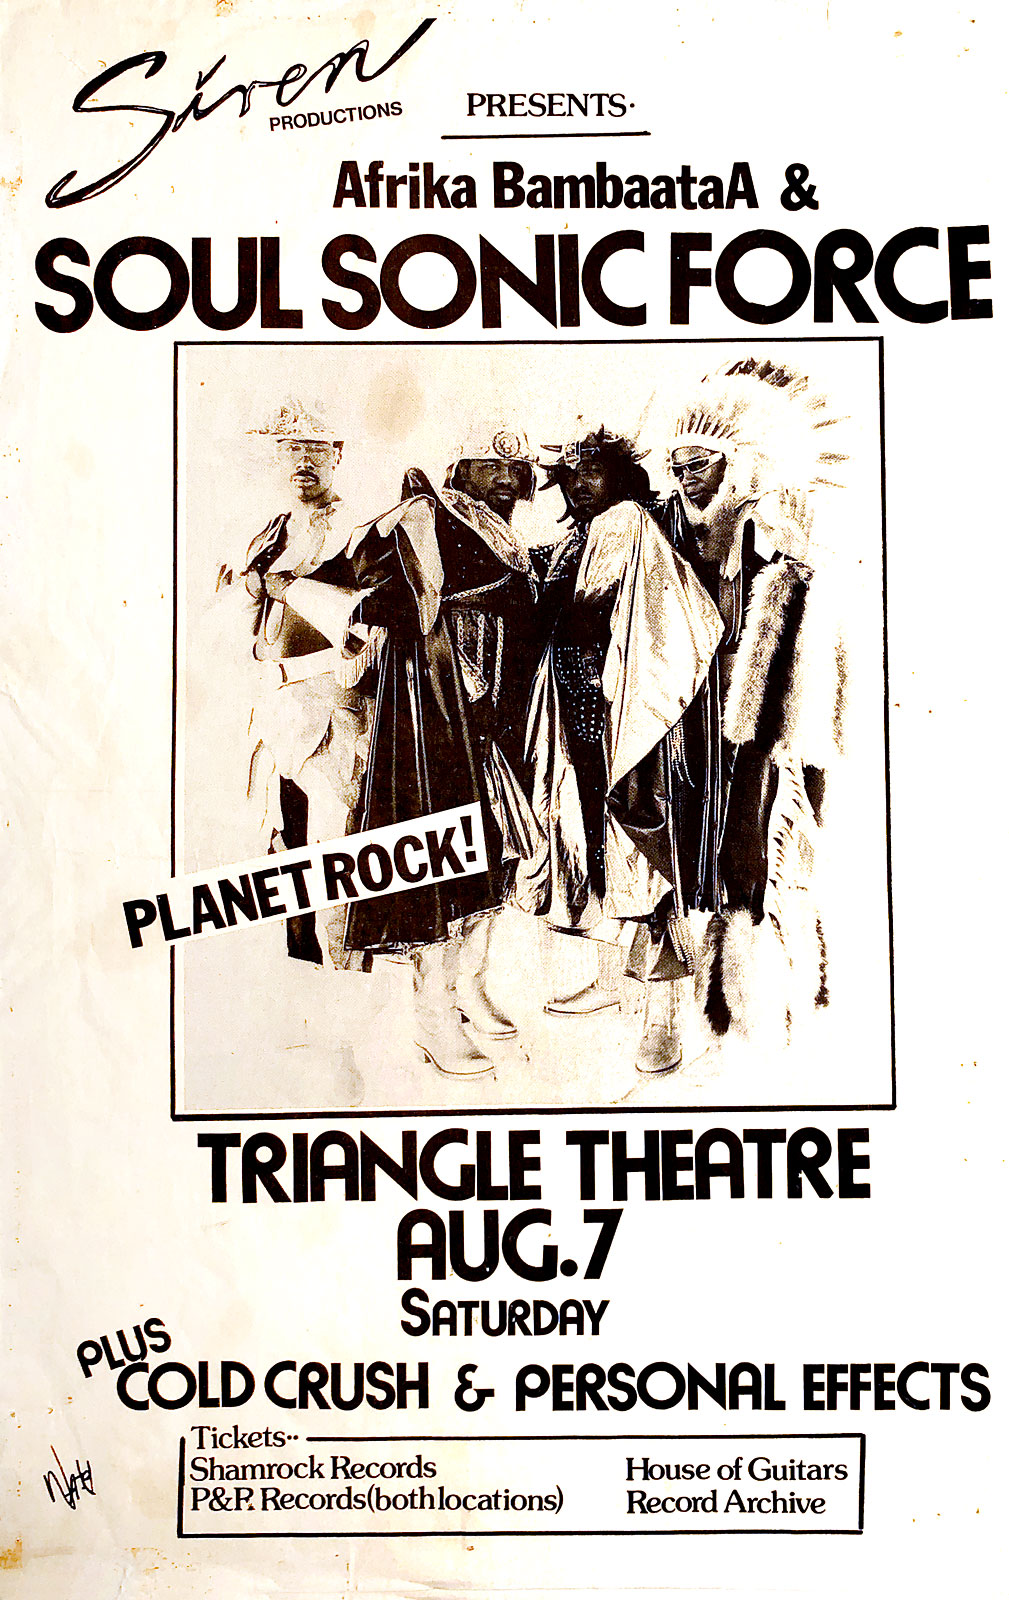 Poster for Soul Sonic Force, Personal Effects and Clod Crush at the Triangle Theater in Rochester, New York on 08.07.1982